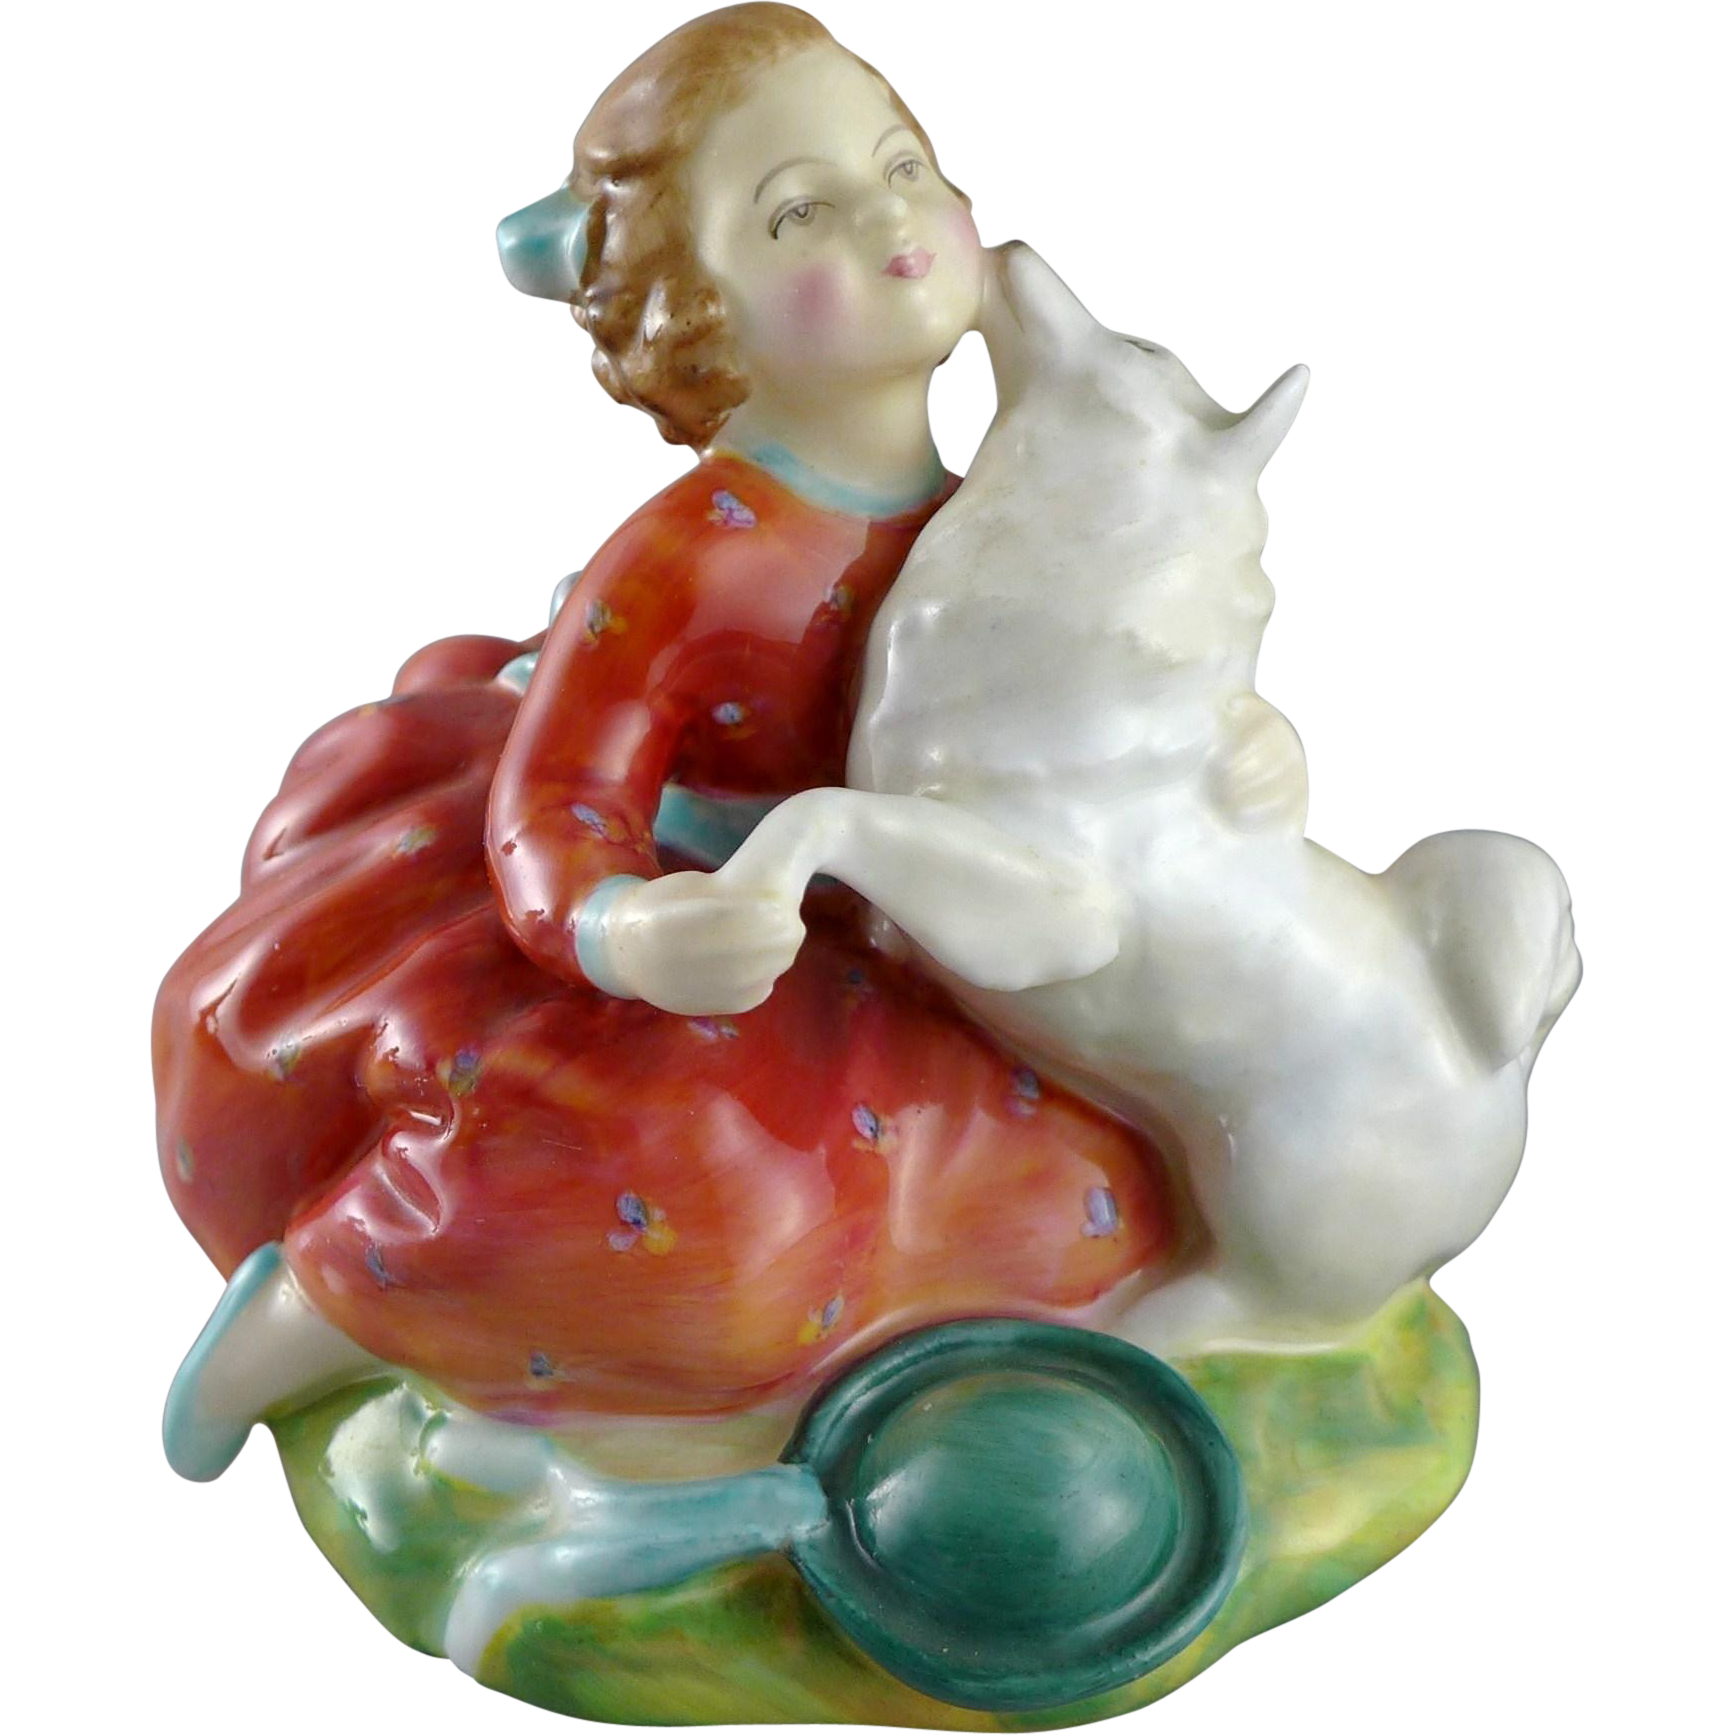 Vintage Royal Doulton Figurine - Home Again - Girl with Dog